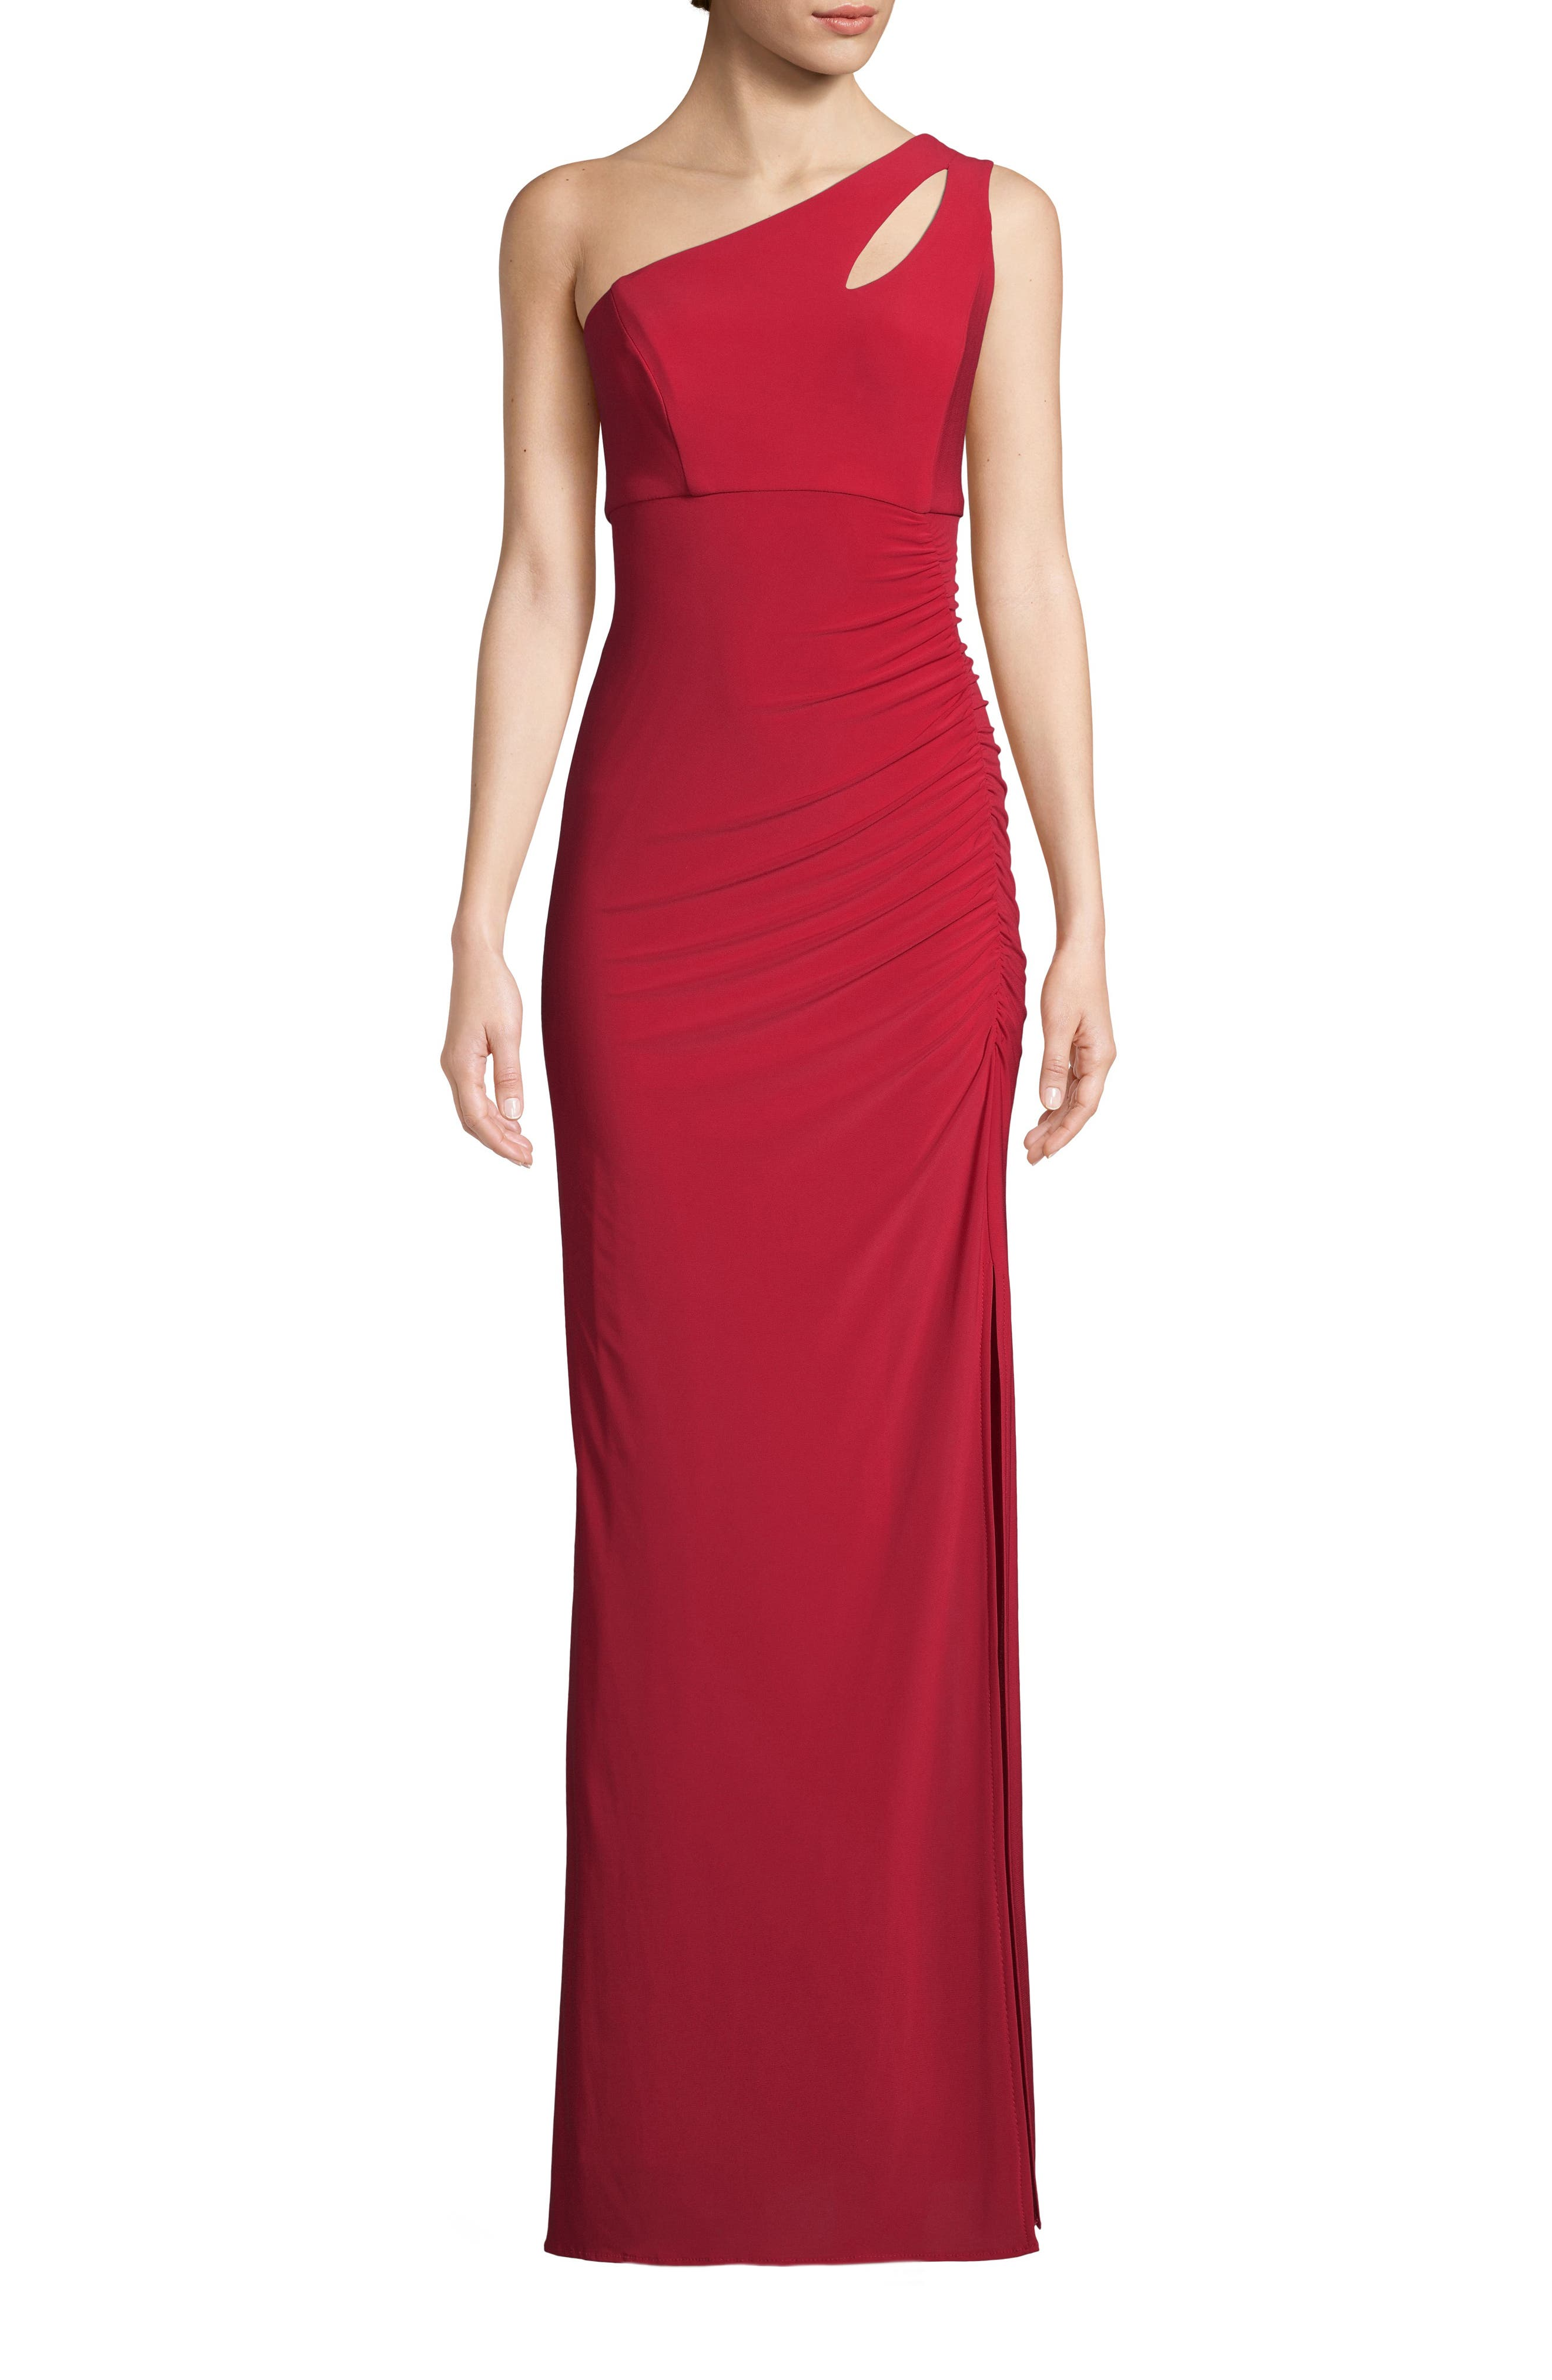 Xscape Keyhole One-Shoulder Evening Dress, Red